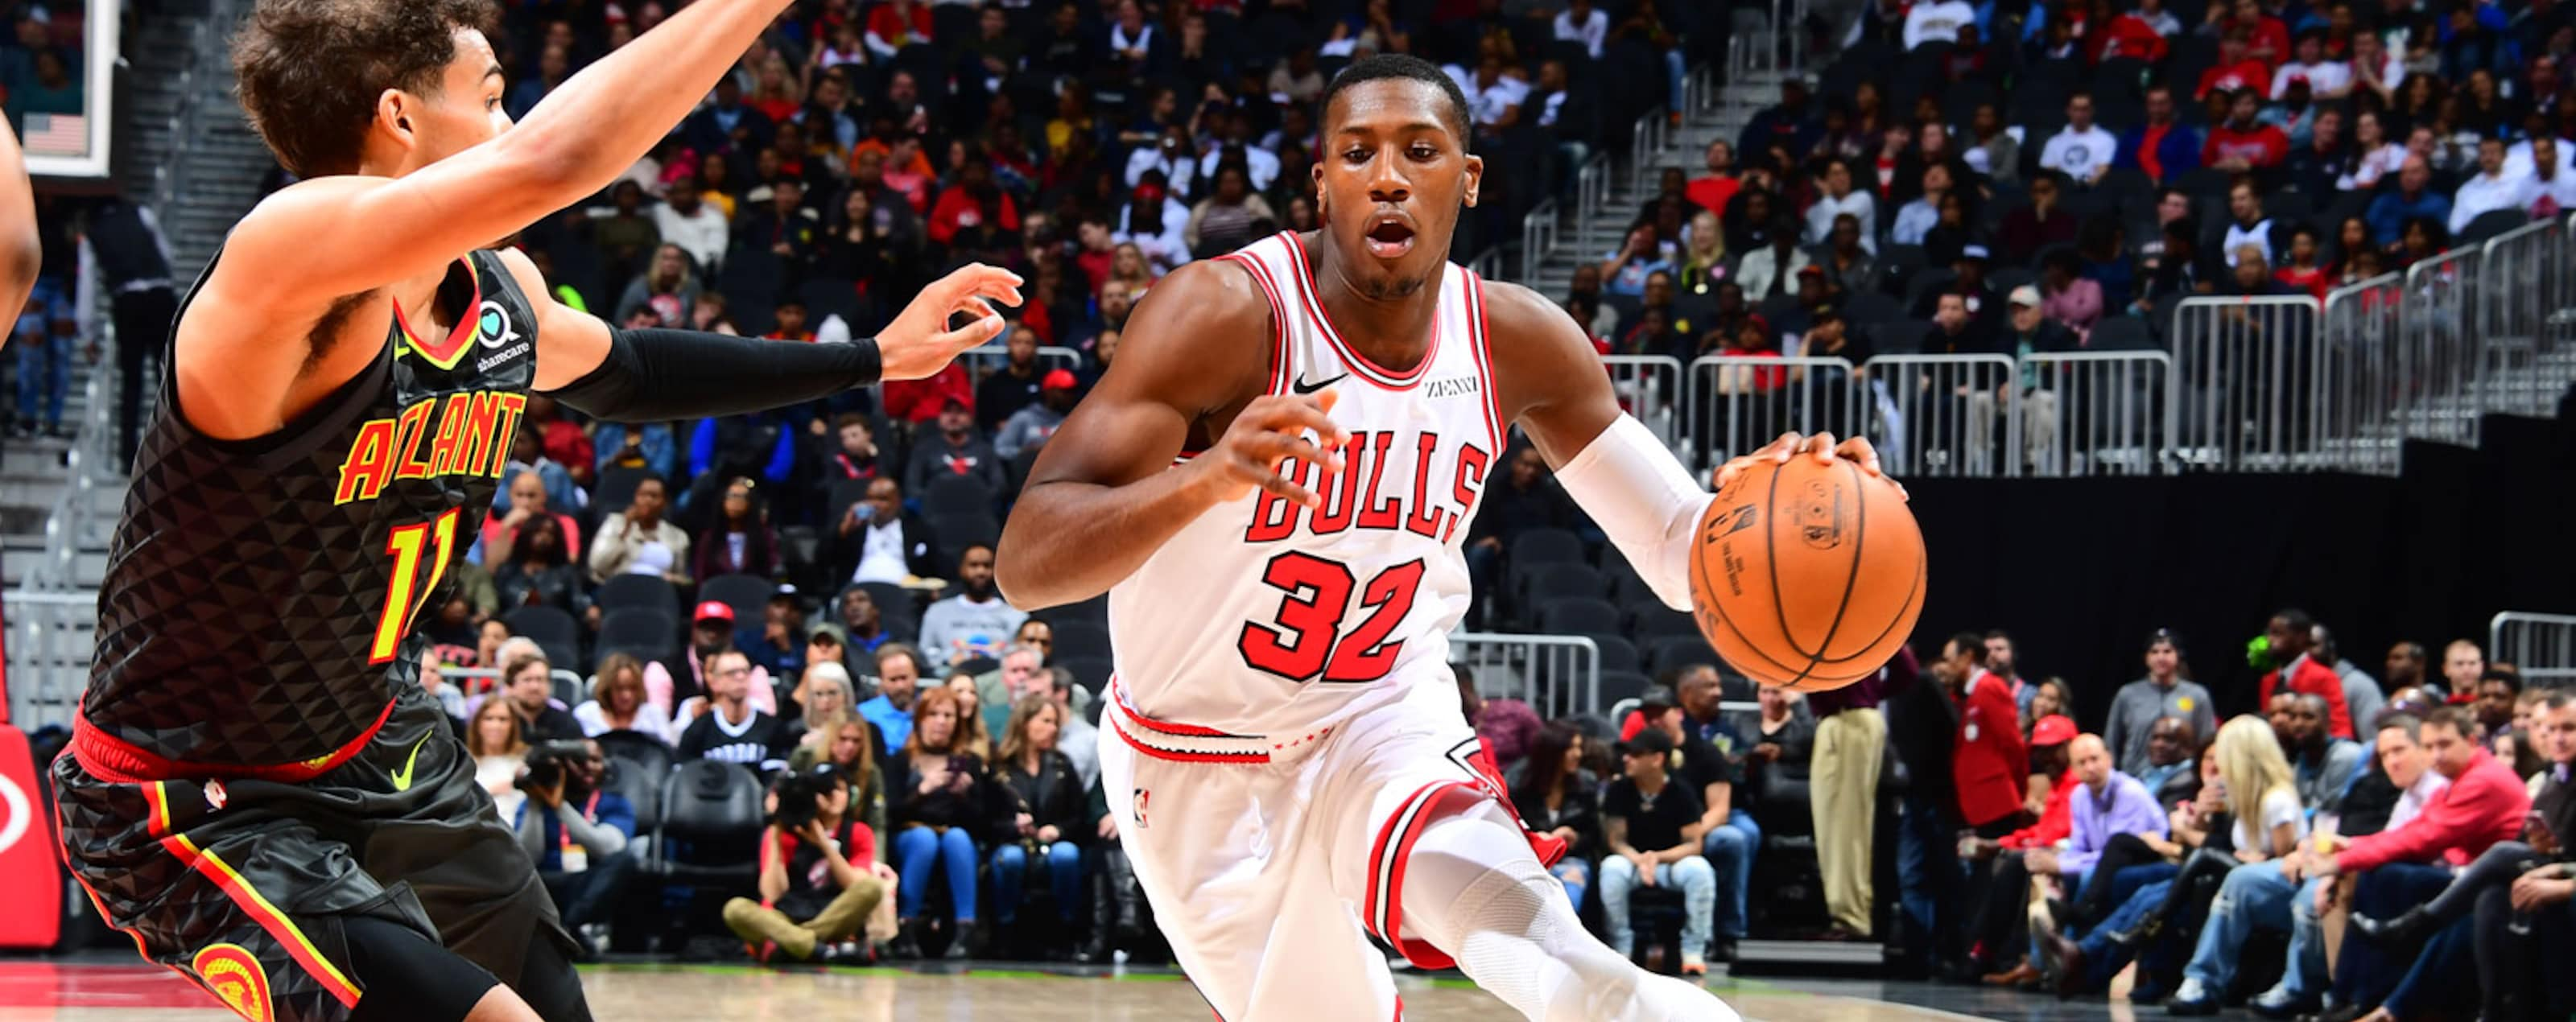 Kris Dunn #32 of the Chicago Bulls drives past Trae Young #11 of the Atlanta Hawks on March 1, 2019 at State Farm Arena in Atlanta, Georgia.